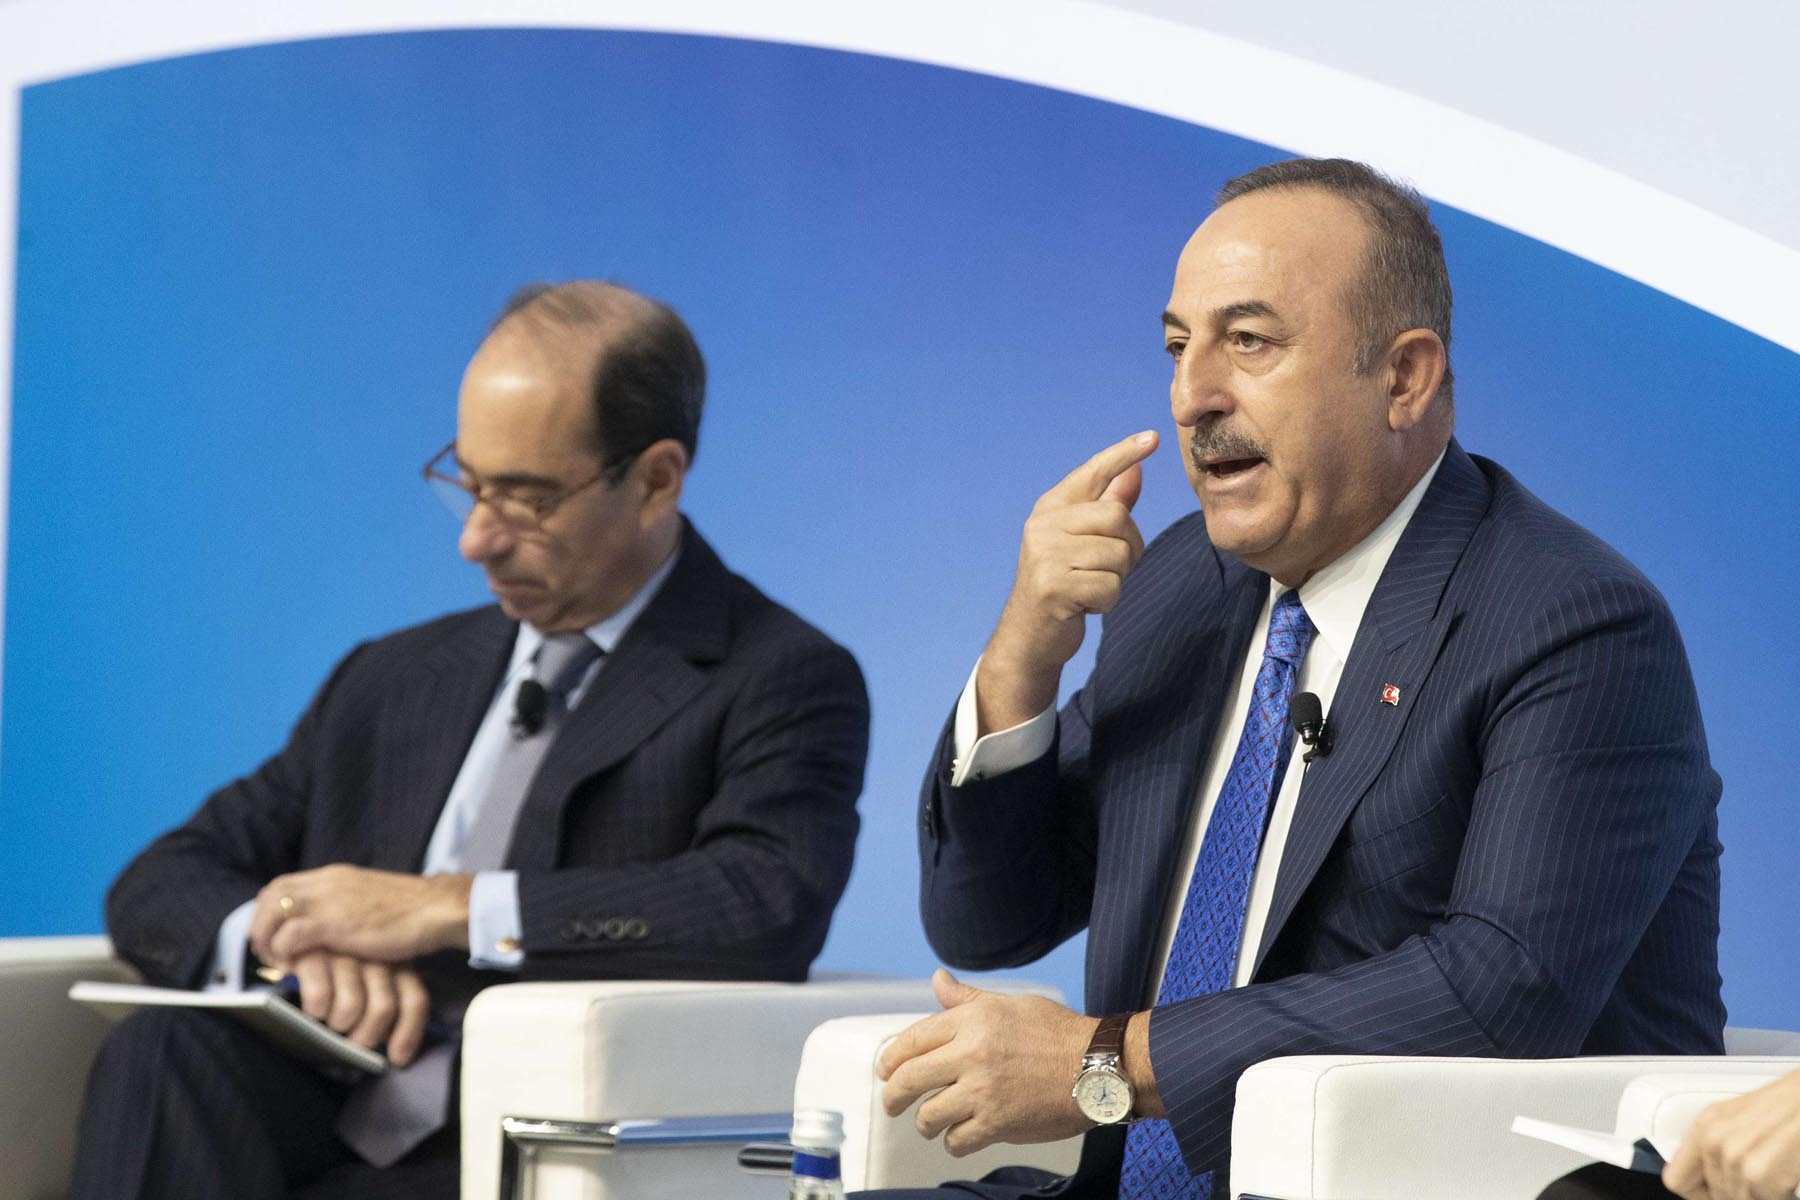 In the public eye. Turkish Minister of Foreign Affairs Mevlut Cavusoglu (R) speaks at the Mediterranean dialogues conference in Rome, December 6. (AP)